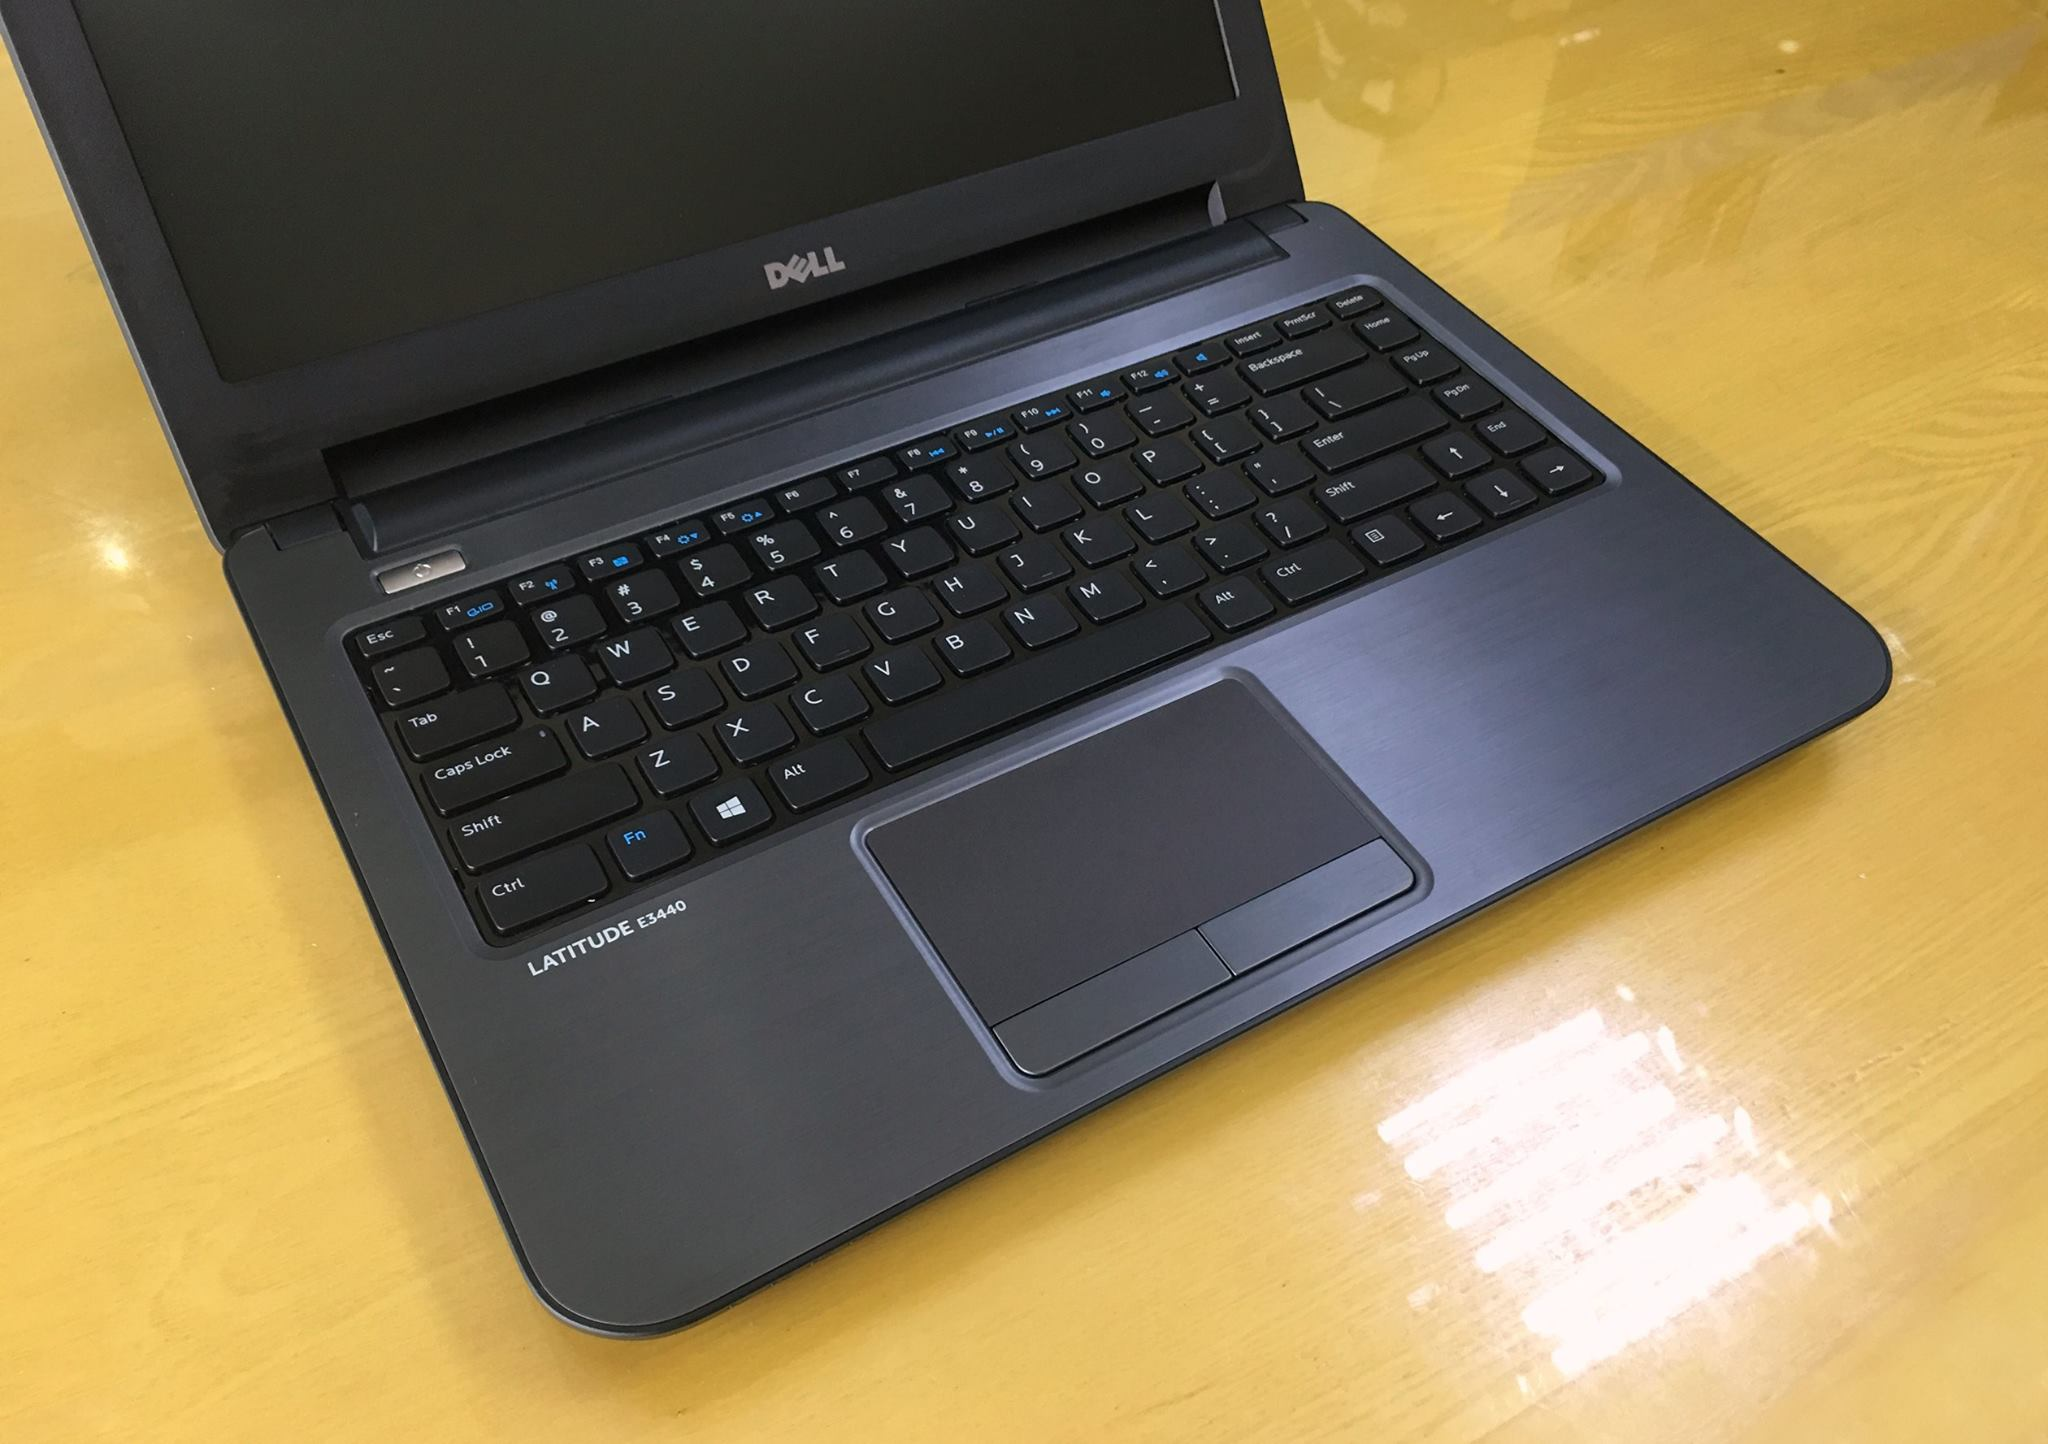 Laptop Dell Latitide E3440-6.jpg